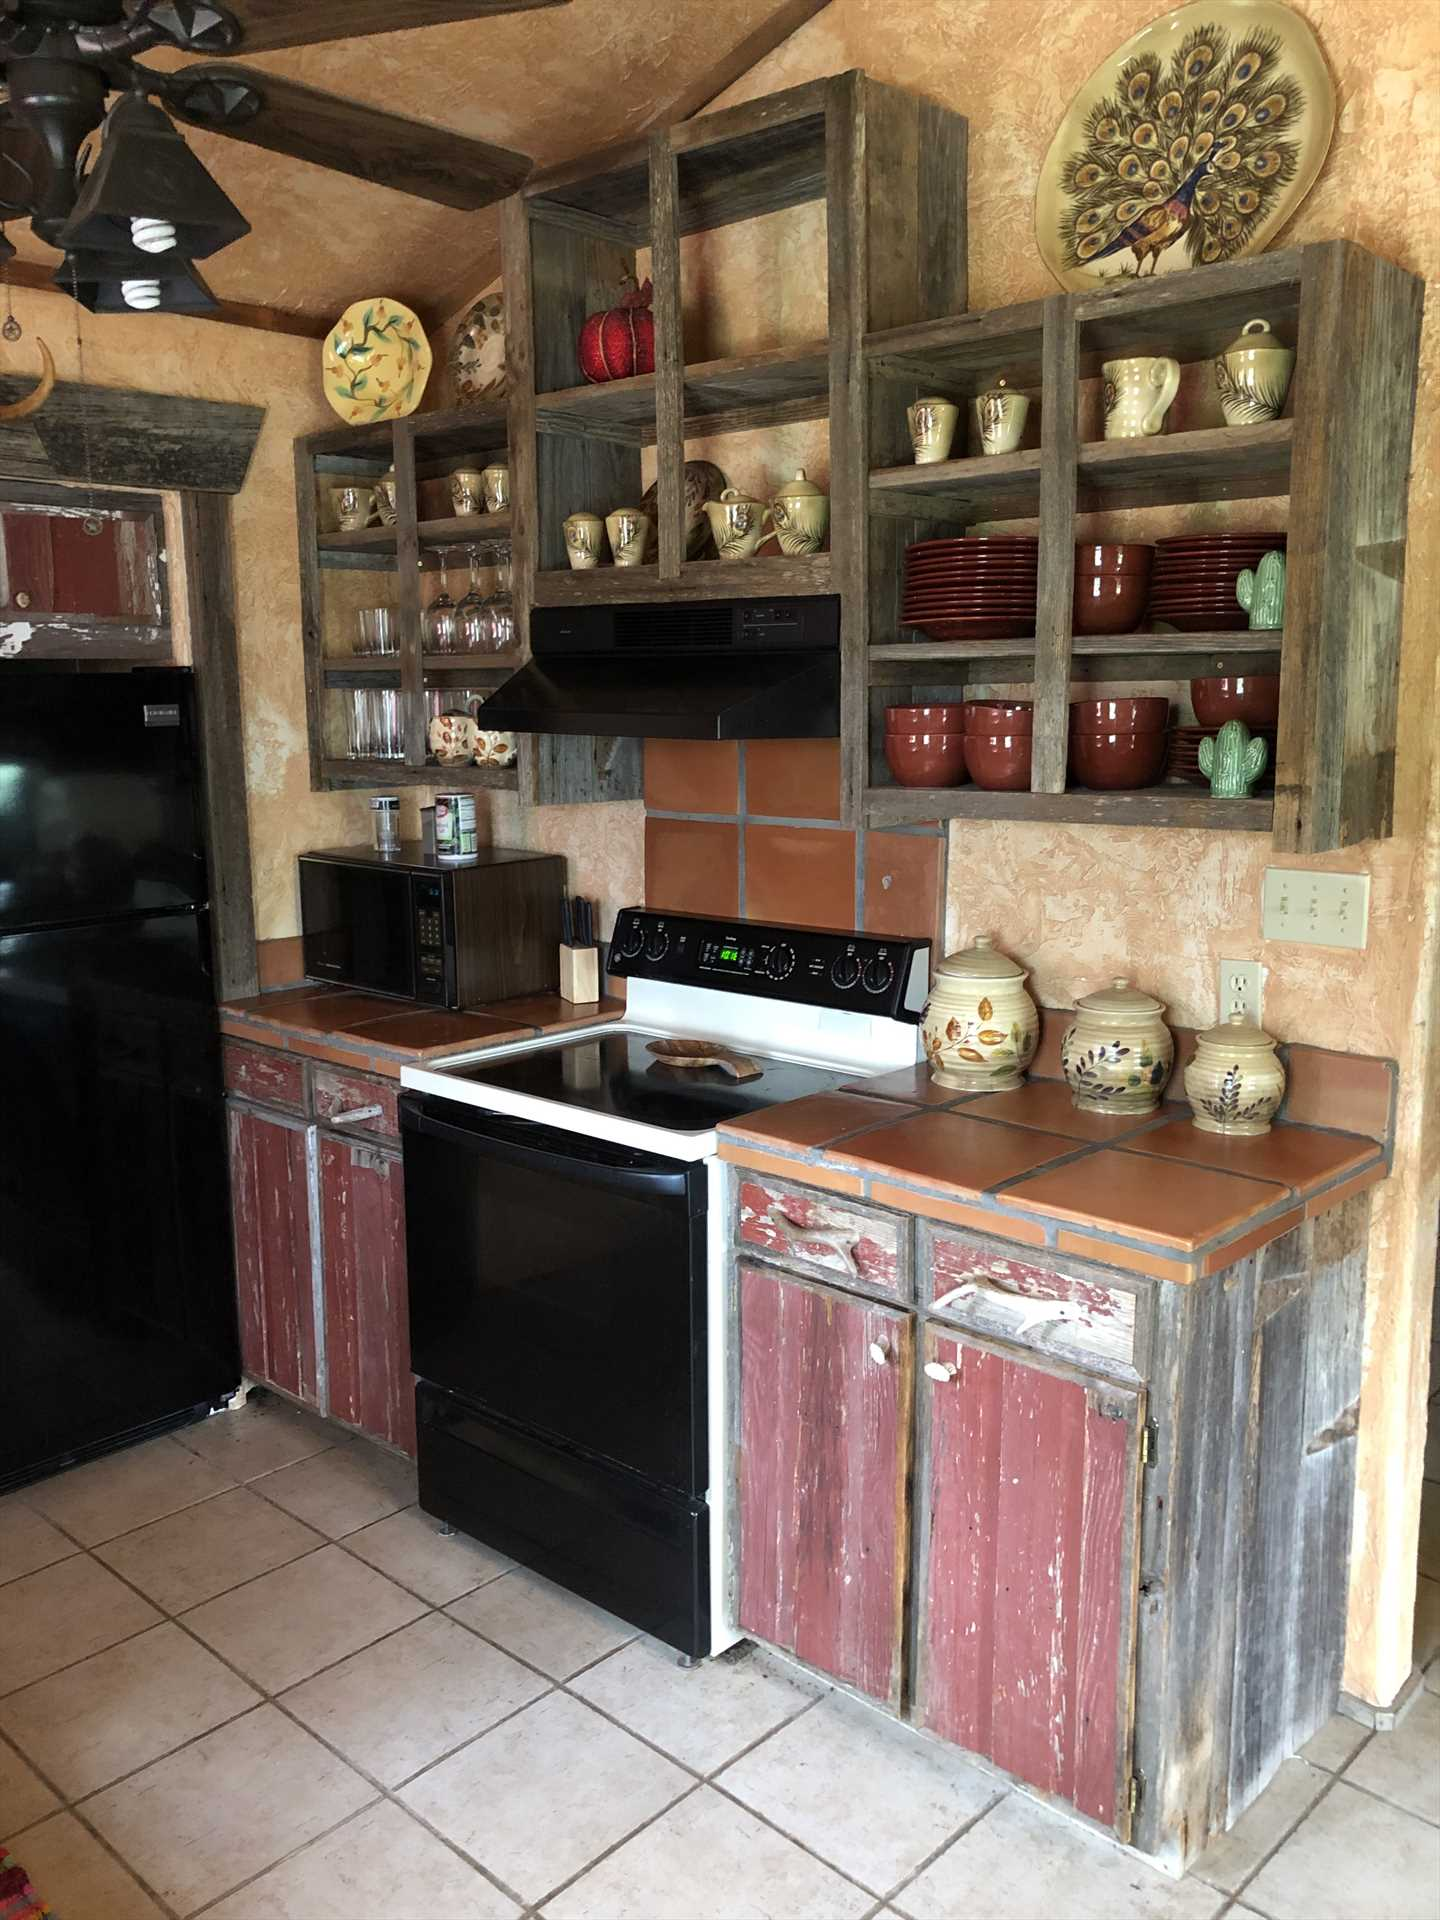 With a stove, microwave, coffee maker, fridge, and more all at your fingertips, all you need to bring is your country cooking expertise!